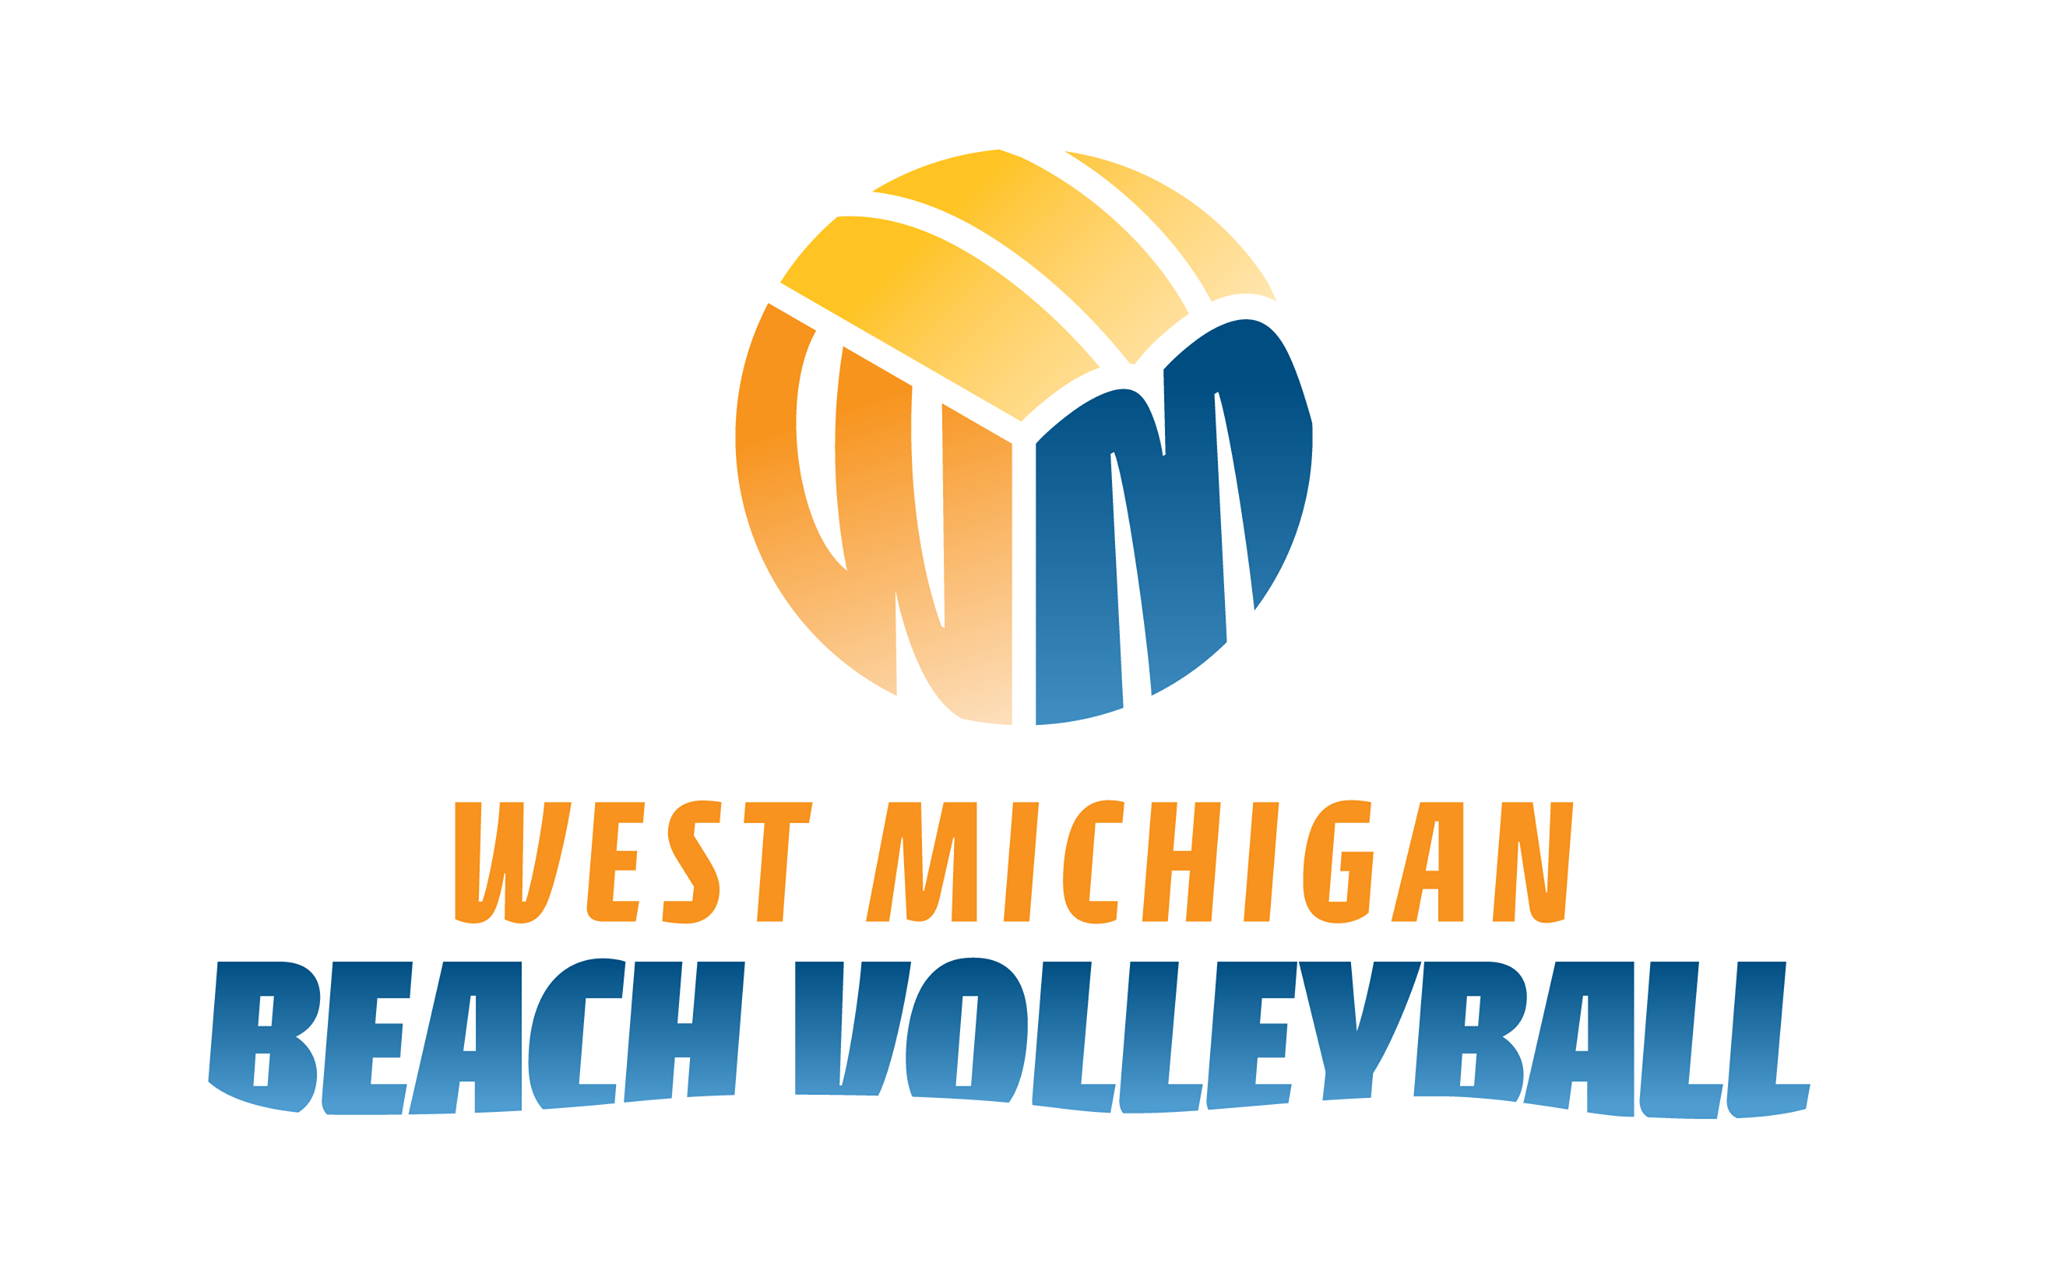 West Michigan Beach Volleyball